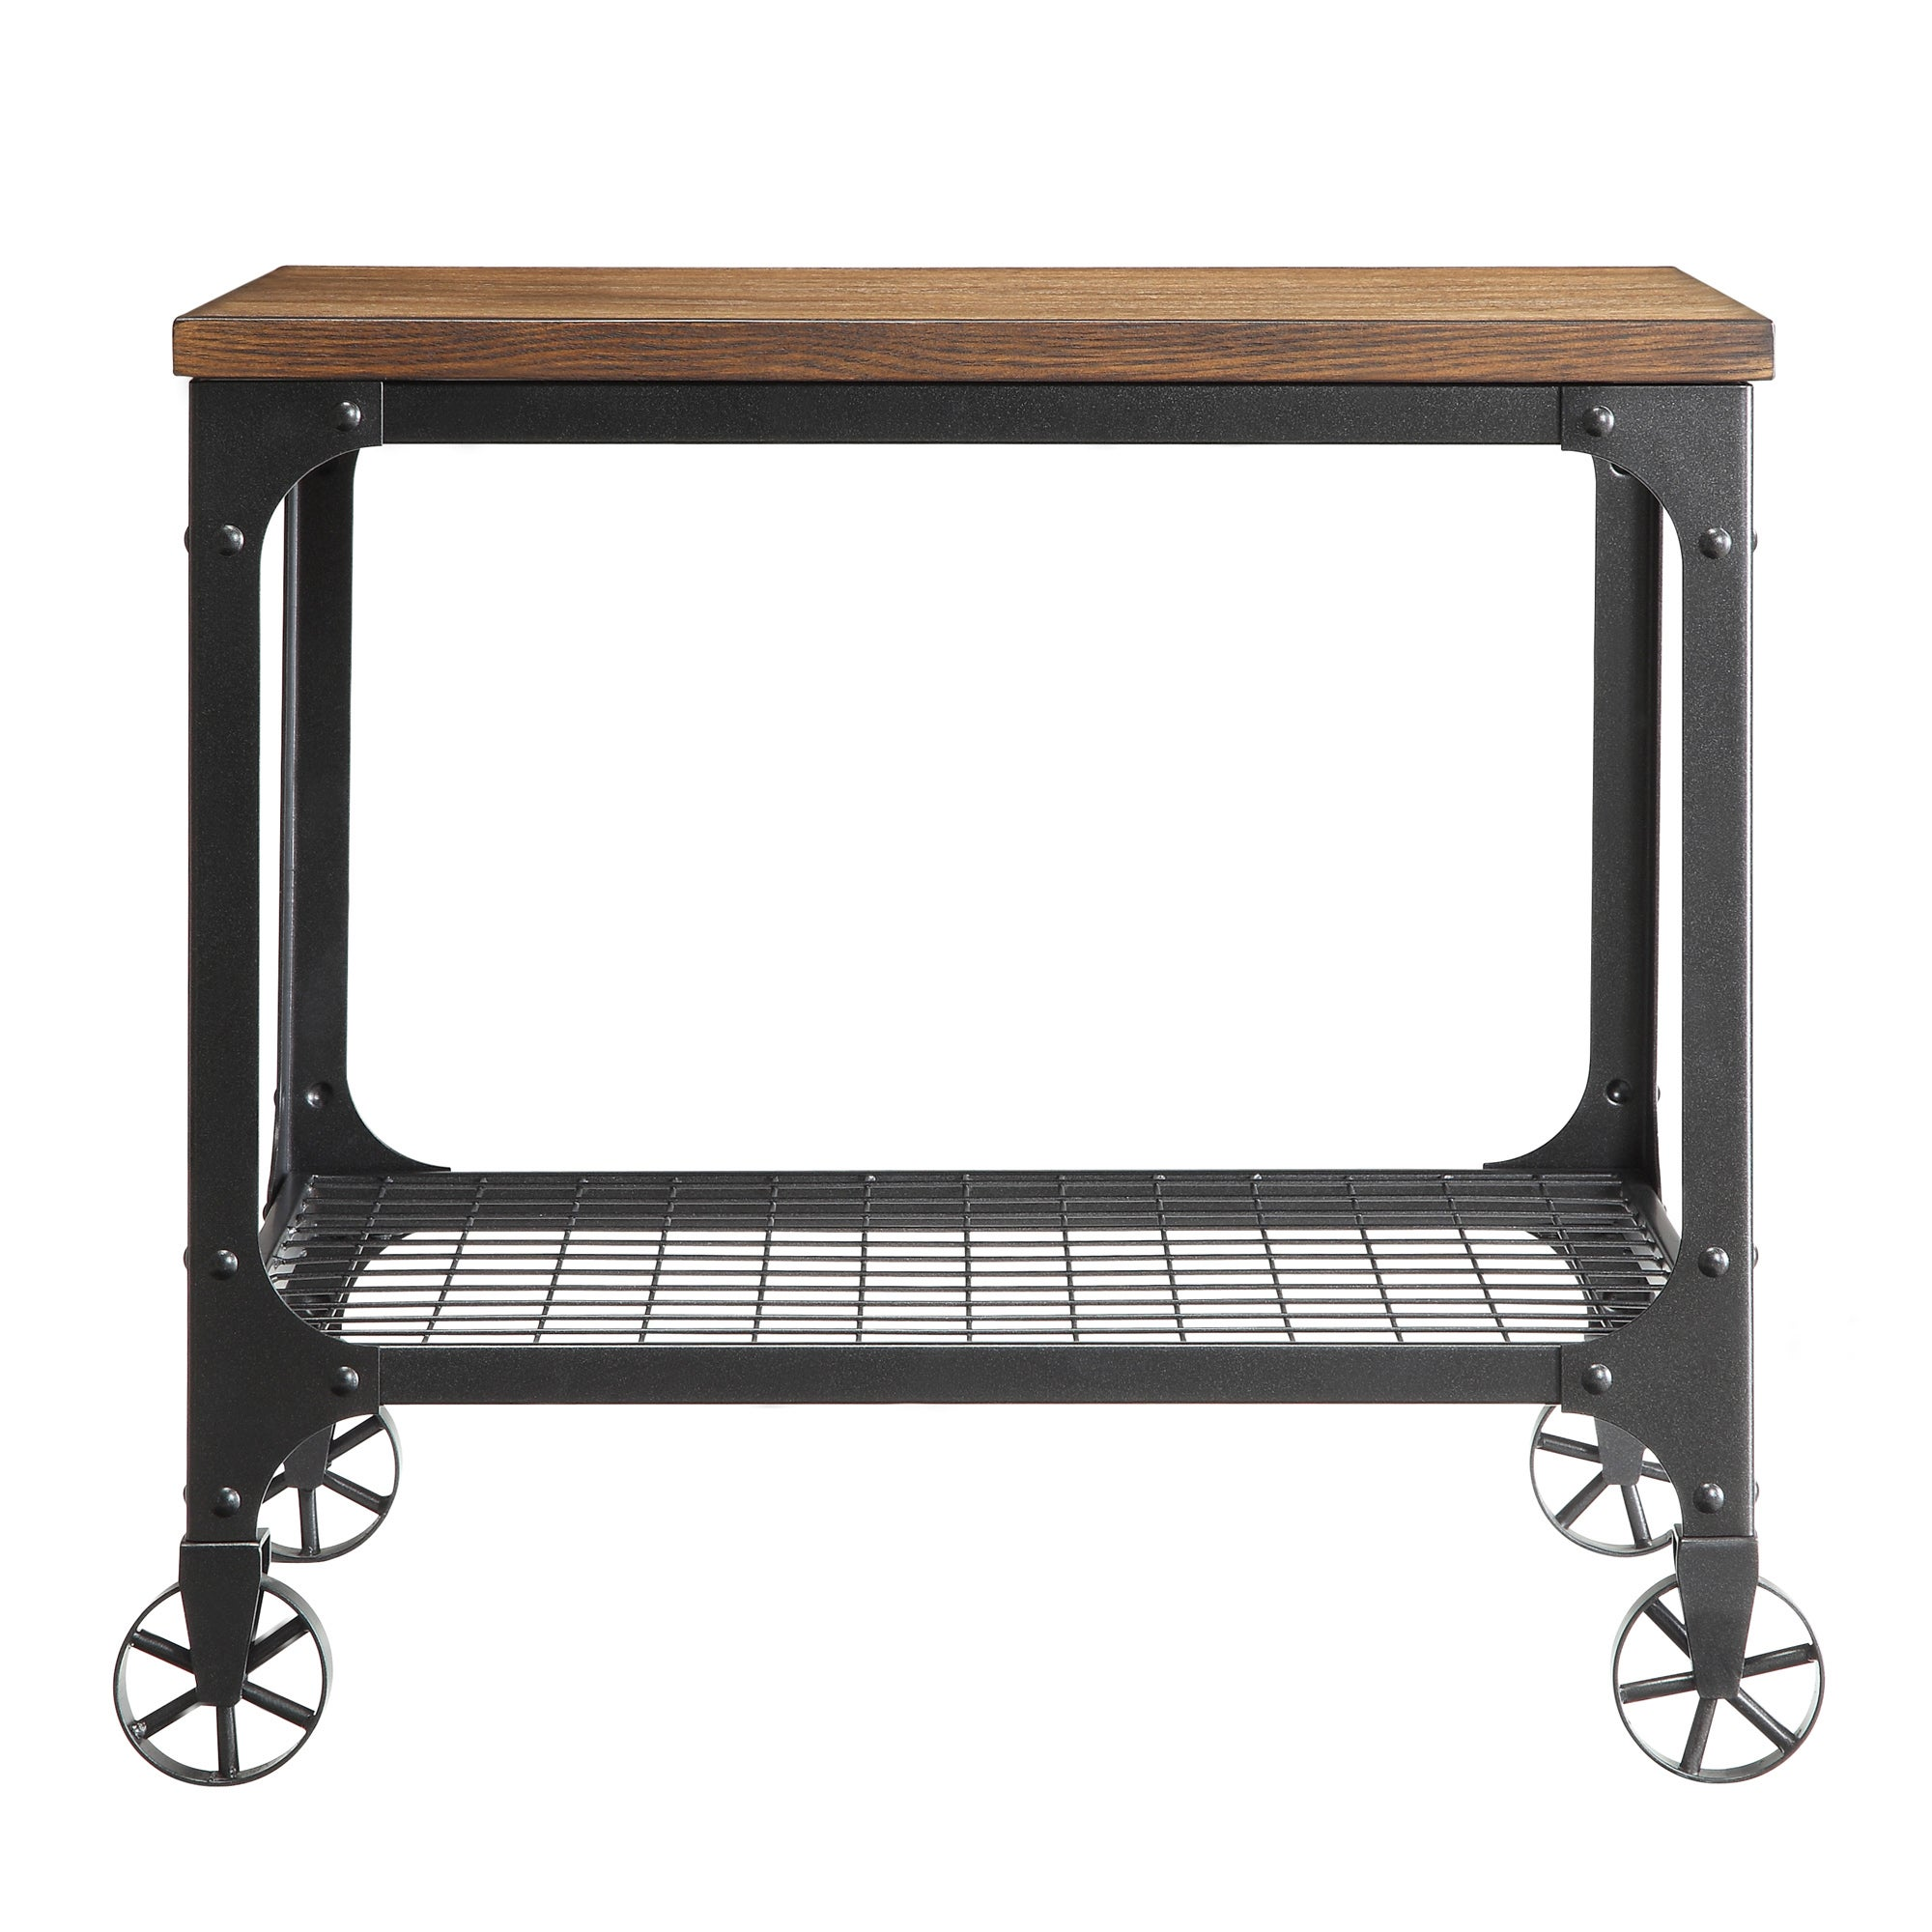 Nelson Rectangle Industrial Modern Rustic End Table by iNSPIRE Q Classic -  Free Shipping Today - Overstock.com - 15867322